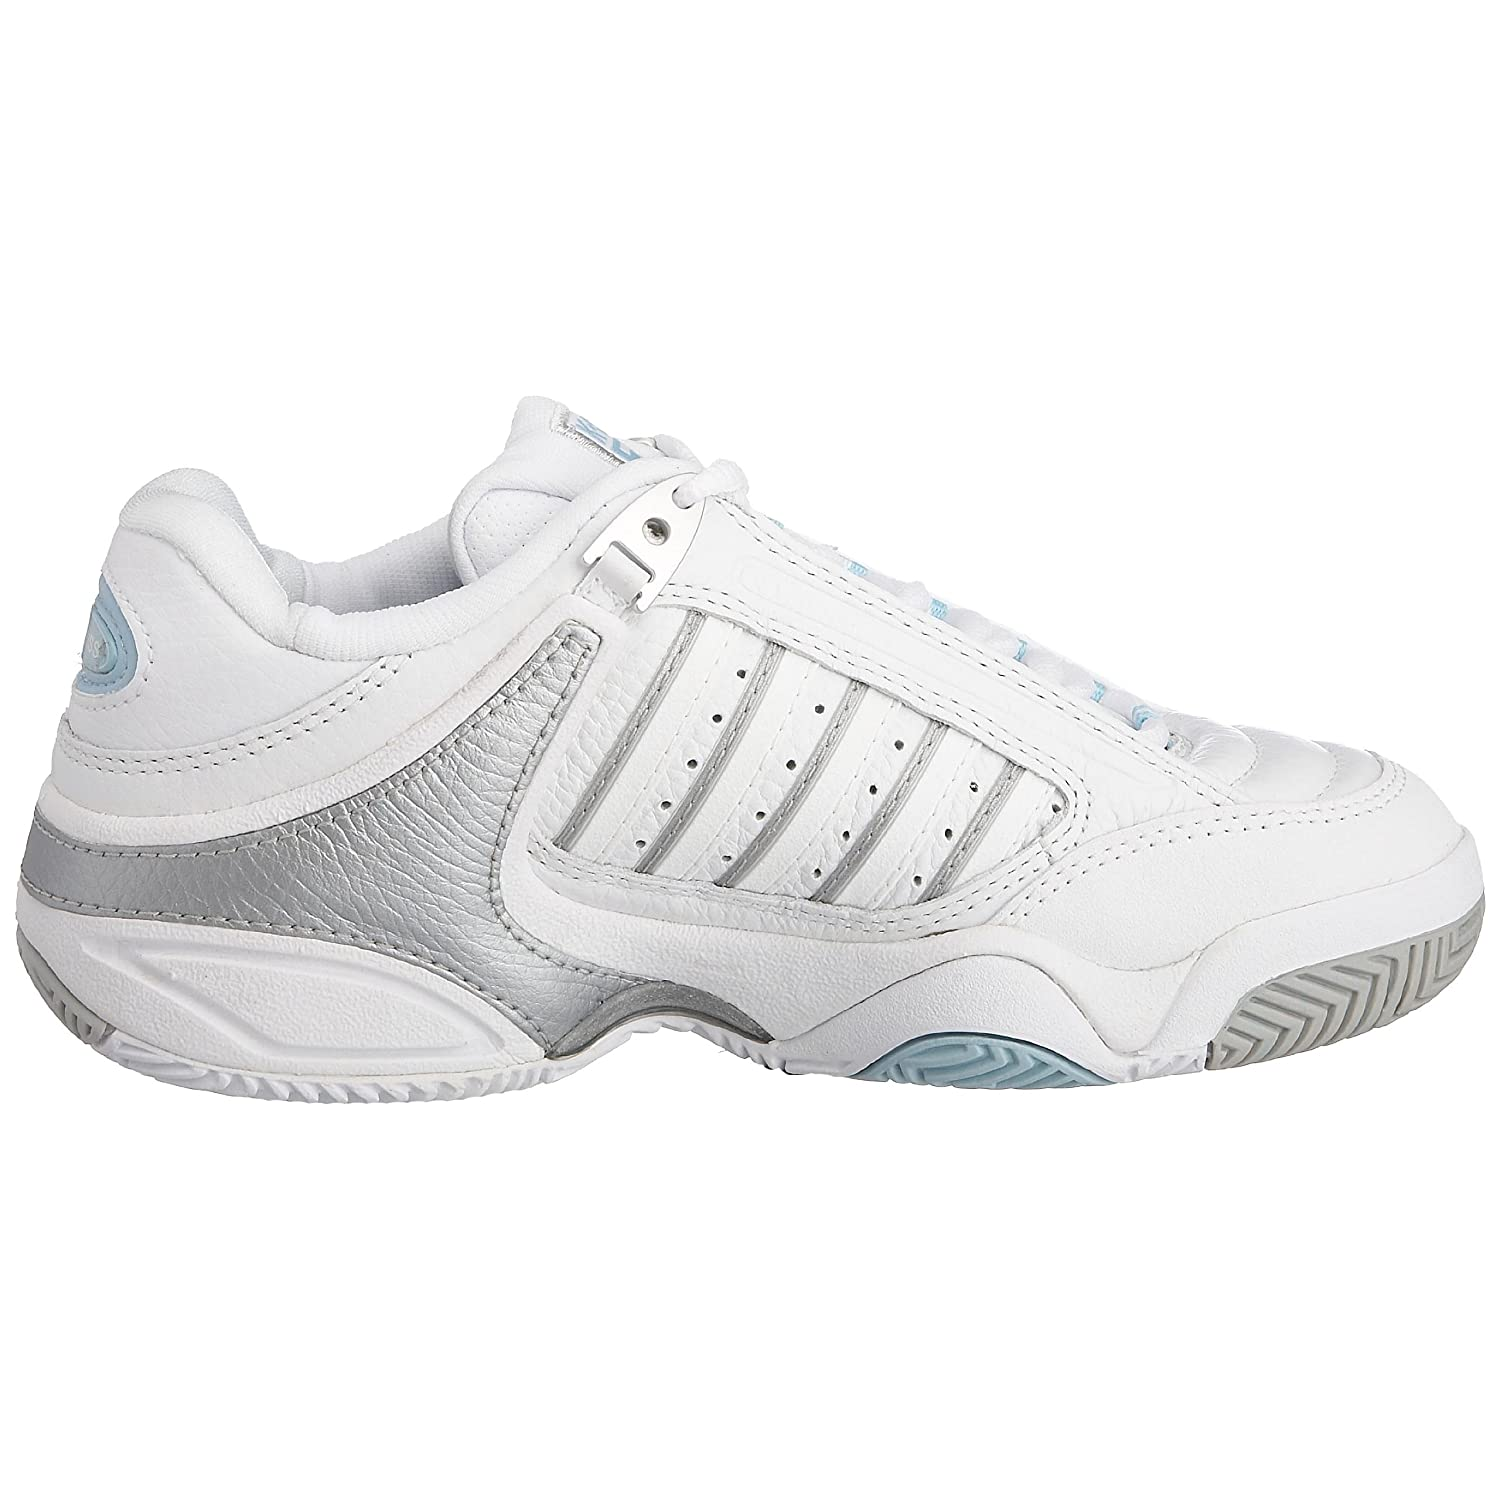 K-Swiss Defier RS Womens Tennis Shoes, White, US8